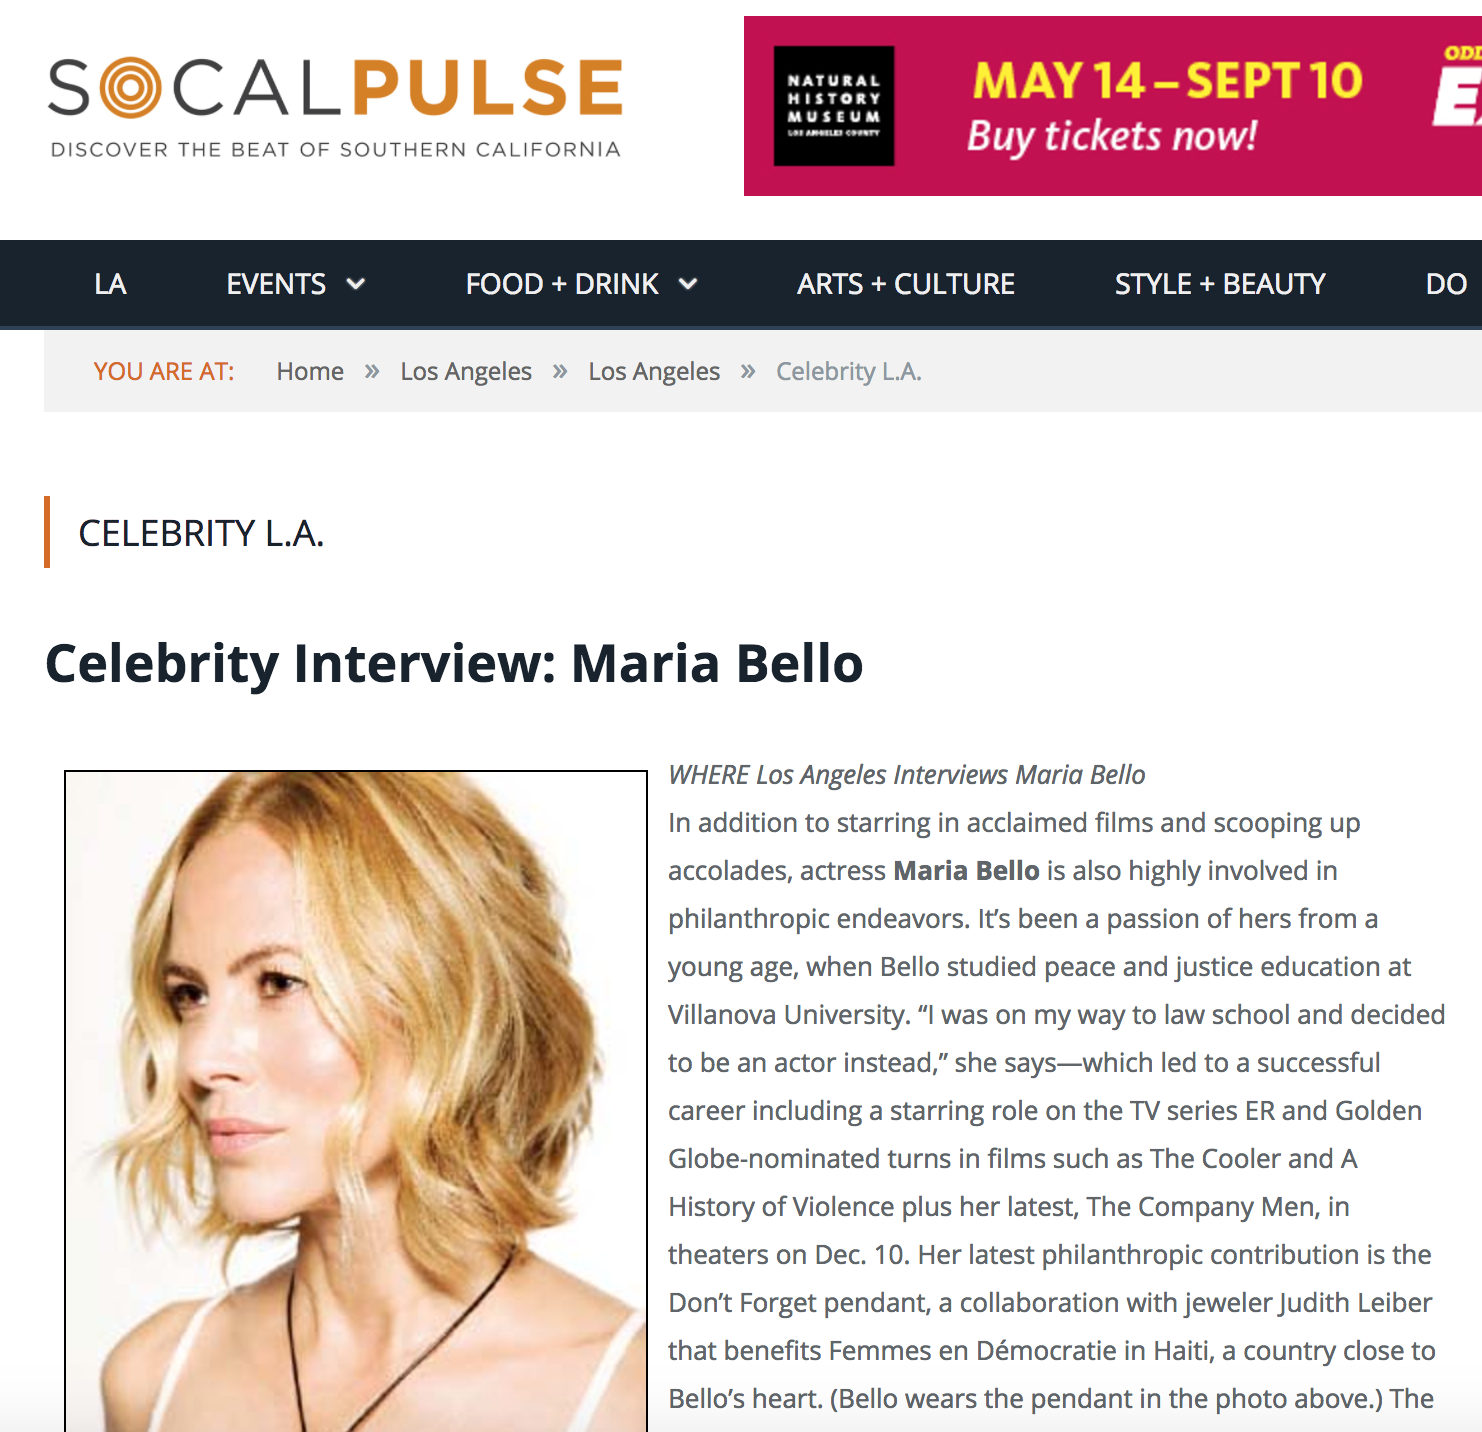 Celebrity Interview: Maria Bello - Curious where the stars shine on the west side? Read up on Maria Bello's favorites:We often scooter over to Abbot Kinney for popsicles or go to Wabi-Sabi, a great sushi restaurant. Yeah, most of my weekends are spent on Abbot Kinney Boulevard!